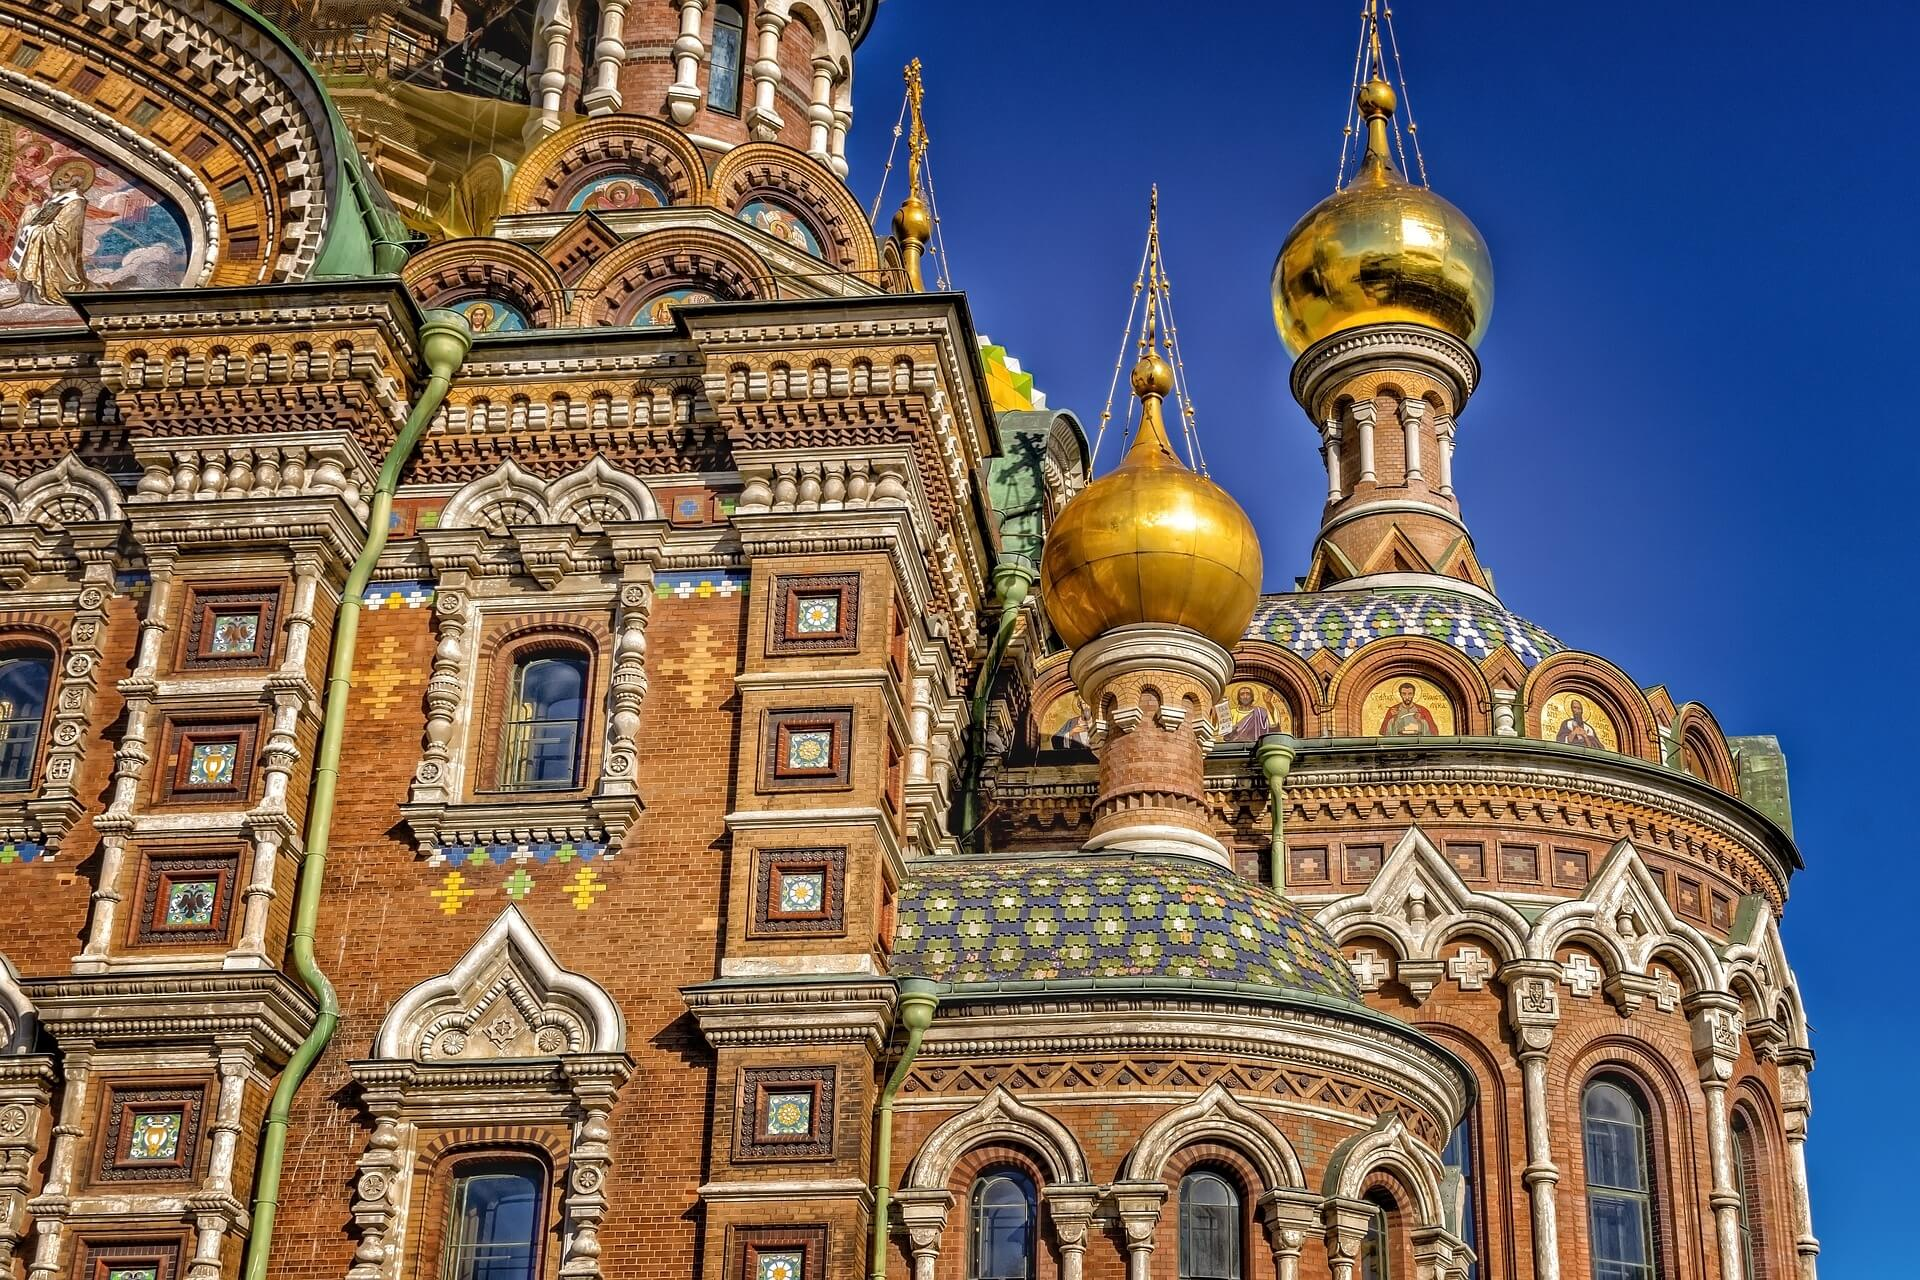 the St Petersburg church in Moscow Russia